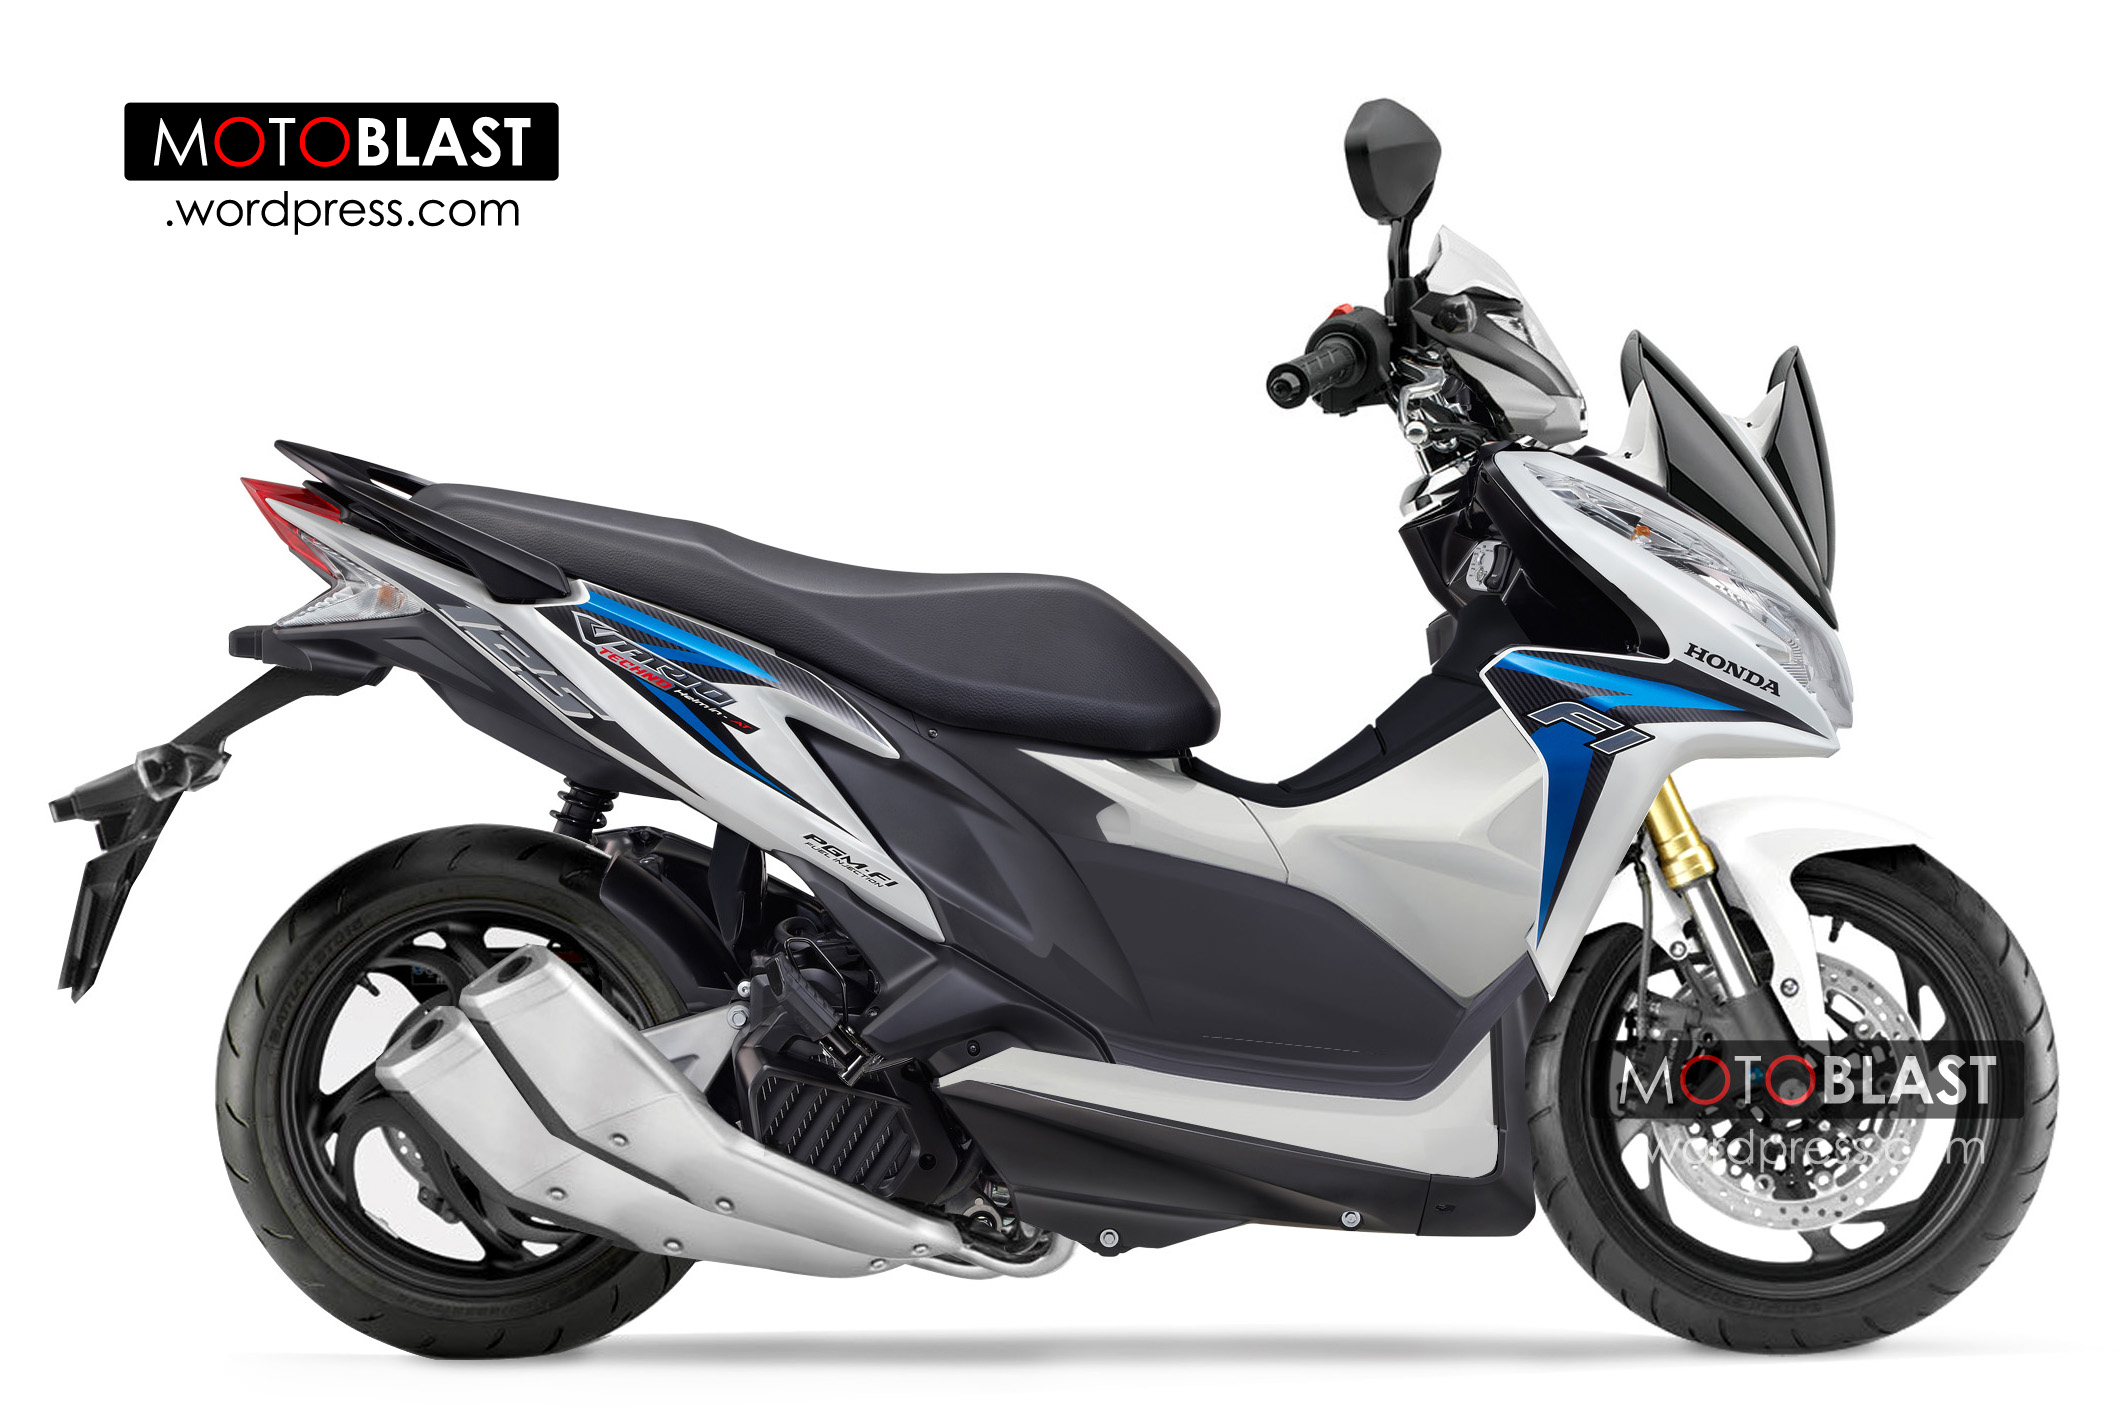 New Modifikasi New Vario 125 Cbs Iss 2015 Release, Reviews and Models